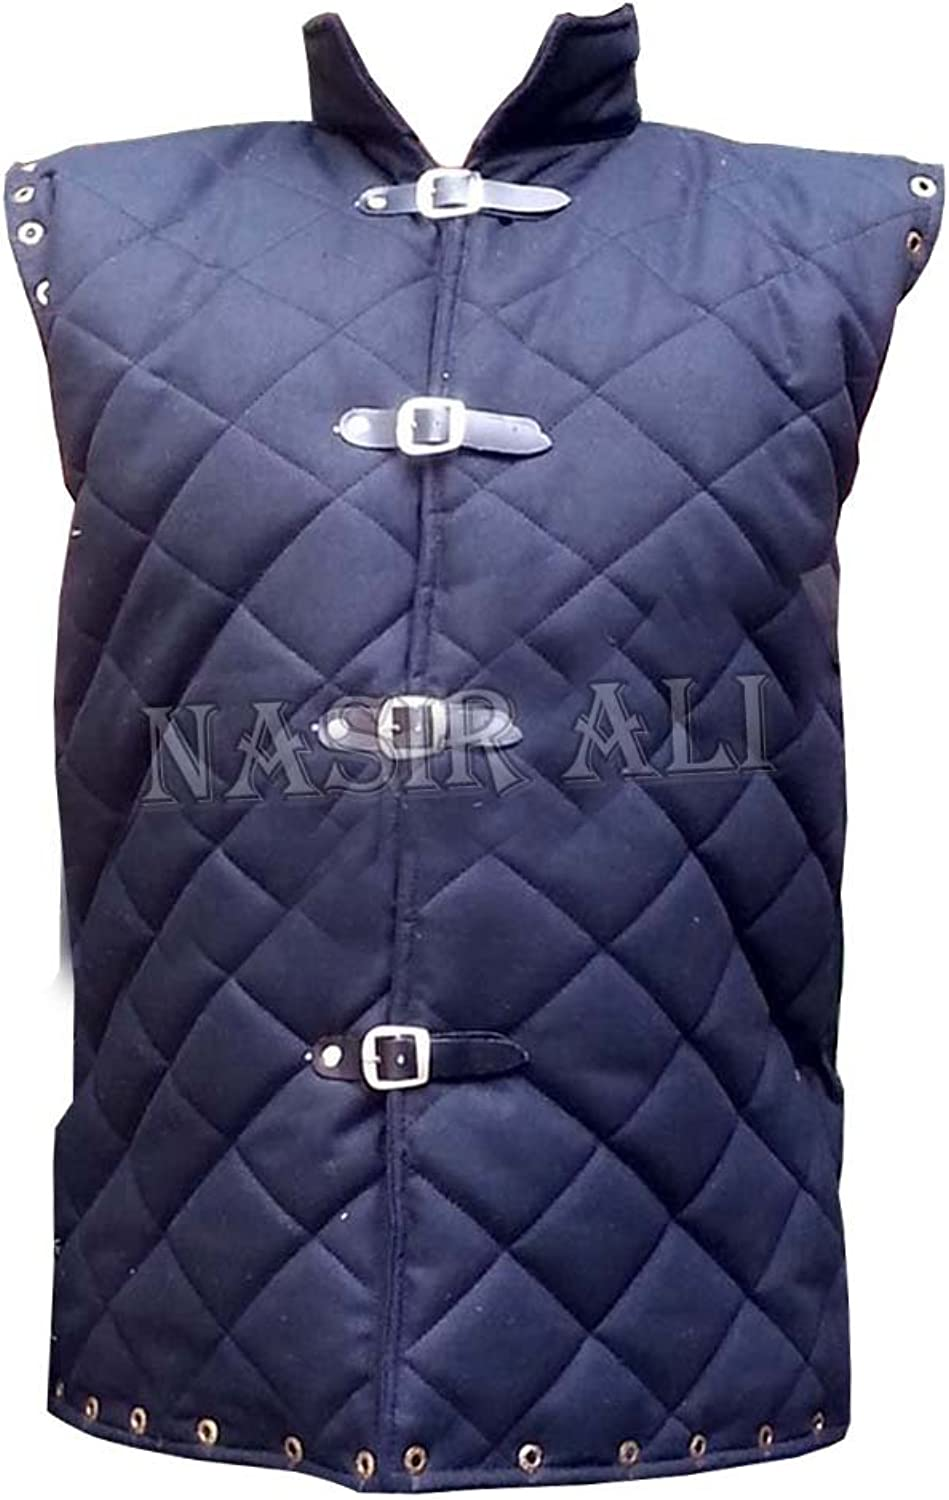 Nasir Ali Professional Model Thick Black color Gambeson Medieval Padded Collar Sleevesless Armor